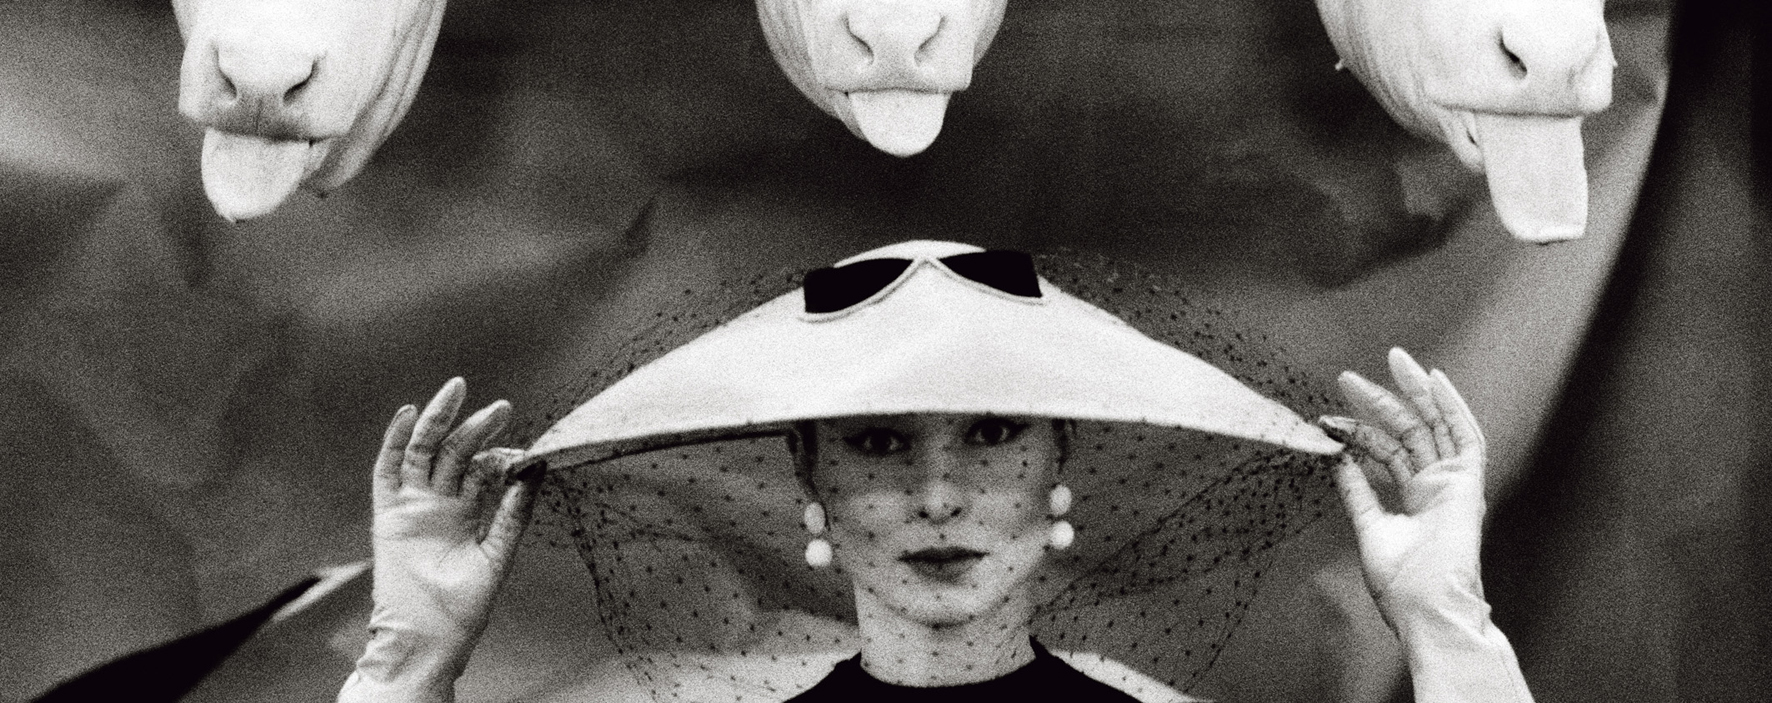 French Vogue, February 1955